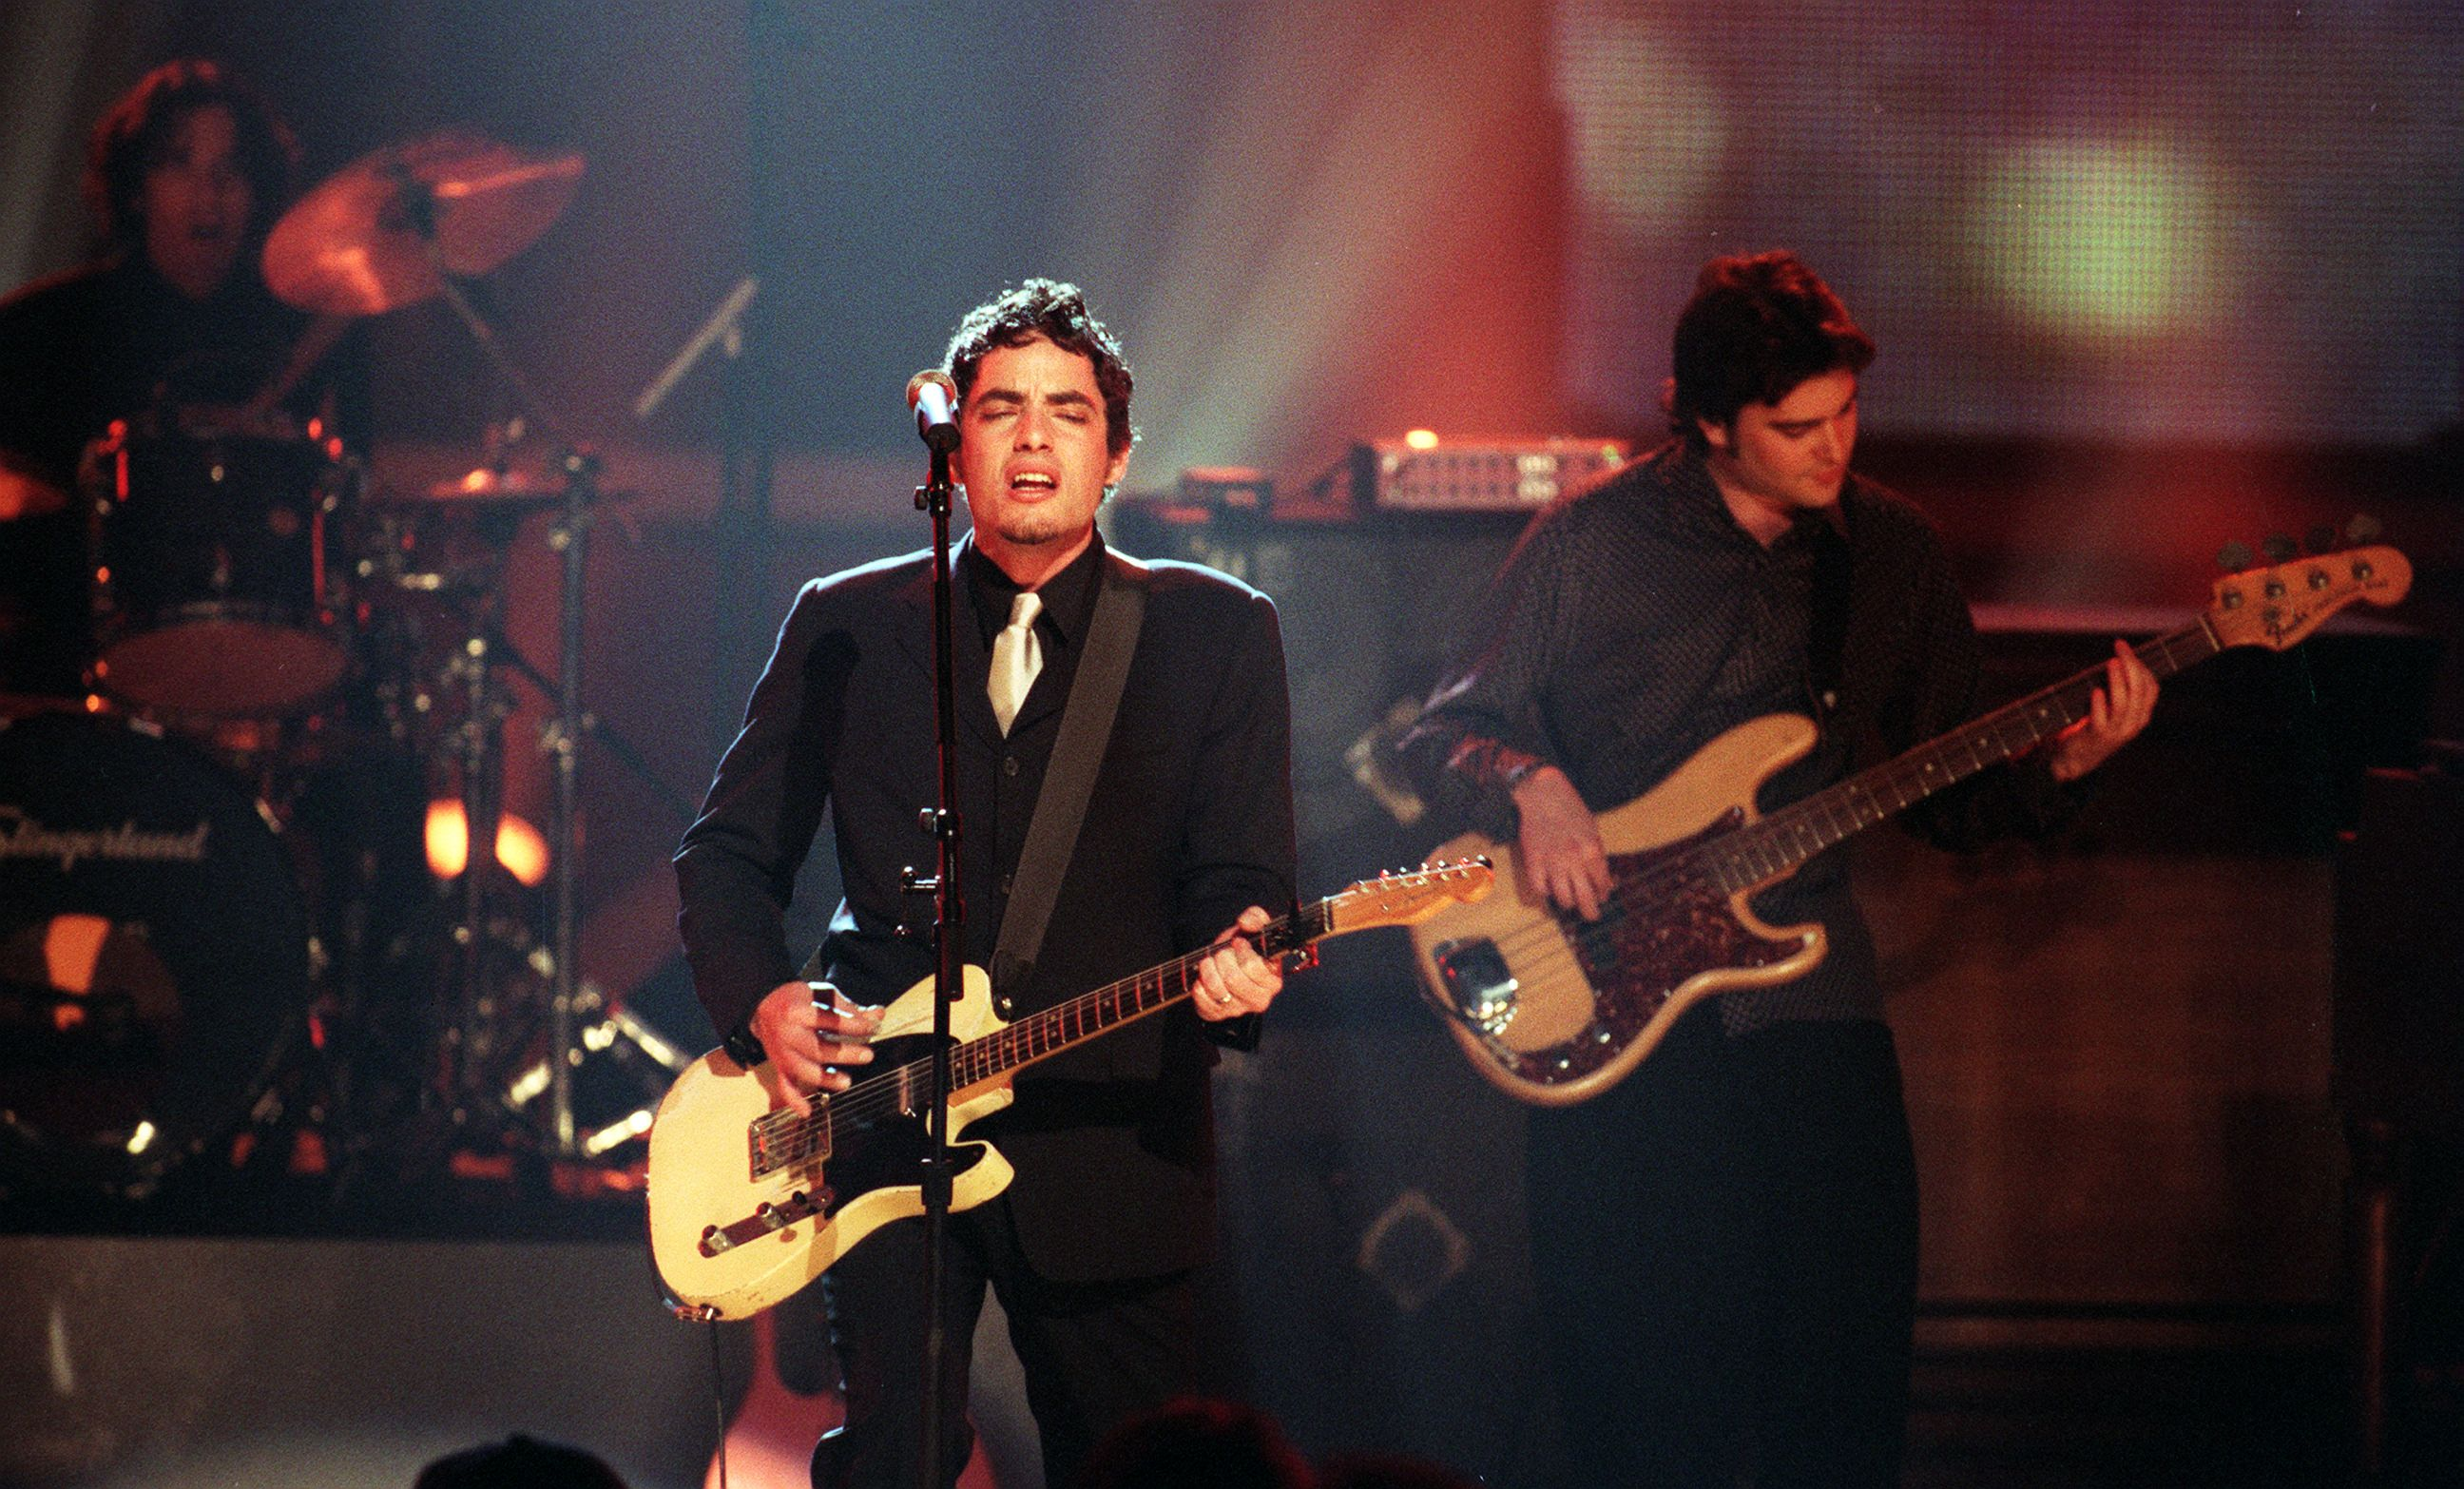 Then: The Wallflowers